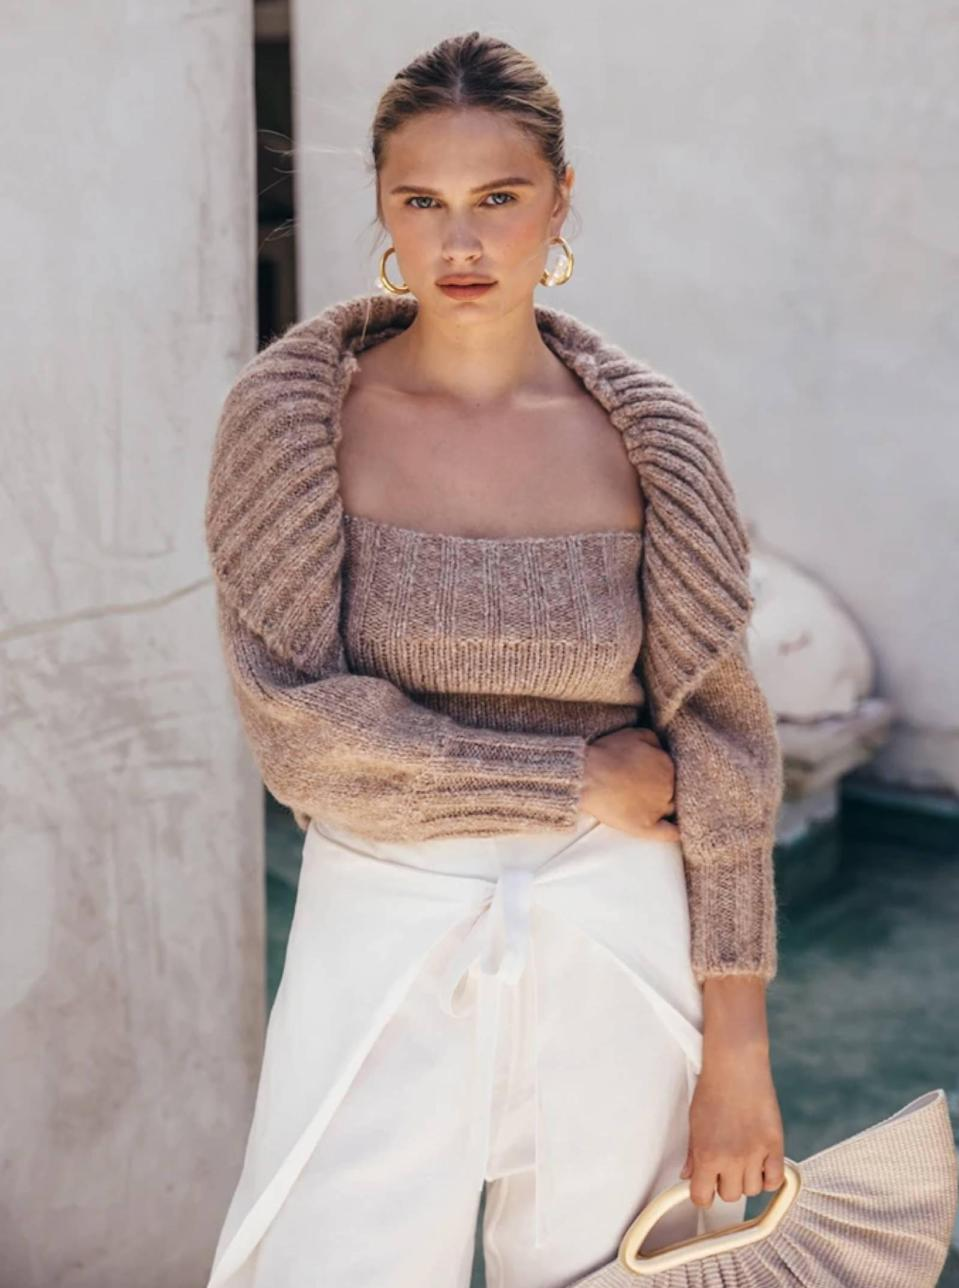 """Reach for this oatmeal shrug if your spring palette consists of creams and nudes. The oversized ribbed collar is everything—and since the knit is on the heavier side, you can totally wear this piece in the fall with <a href=""""https://www.glamour.com/story/cozy-cashmere-sets-to-buy-through-glamour-rewards?mbid=synd_yahoo_rss"""" rel=""""nofollow noopener"""" target=""""_blank"""" data-ylk=""""slk:cashmere joggers"""" class=""""link rapid-noclick-resp"""">cashmere joggers</a> or wide-leg jeans. $298, Cult Gaia. <a href=""""https://cultgaia.com/products/virginie-knit-top-light-camel"""" rel=""""nofollow noopener"""" target=""""_blank"""" data-ylk=""""slk:Get it now!"""" class=""""link rapid-noclick-resp"""">Get it now!</a>"""